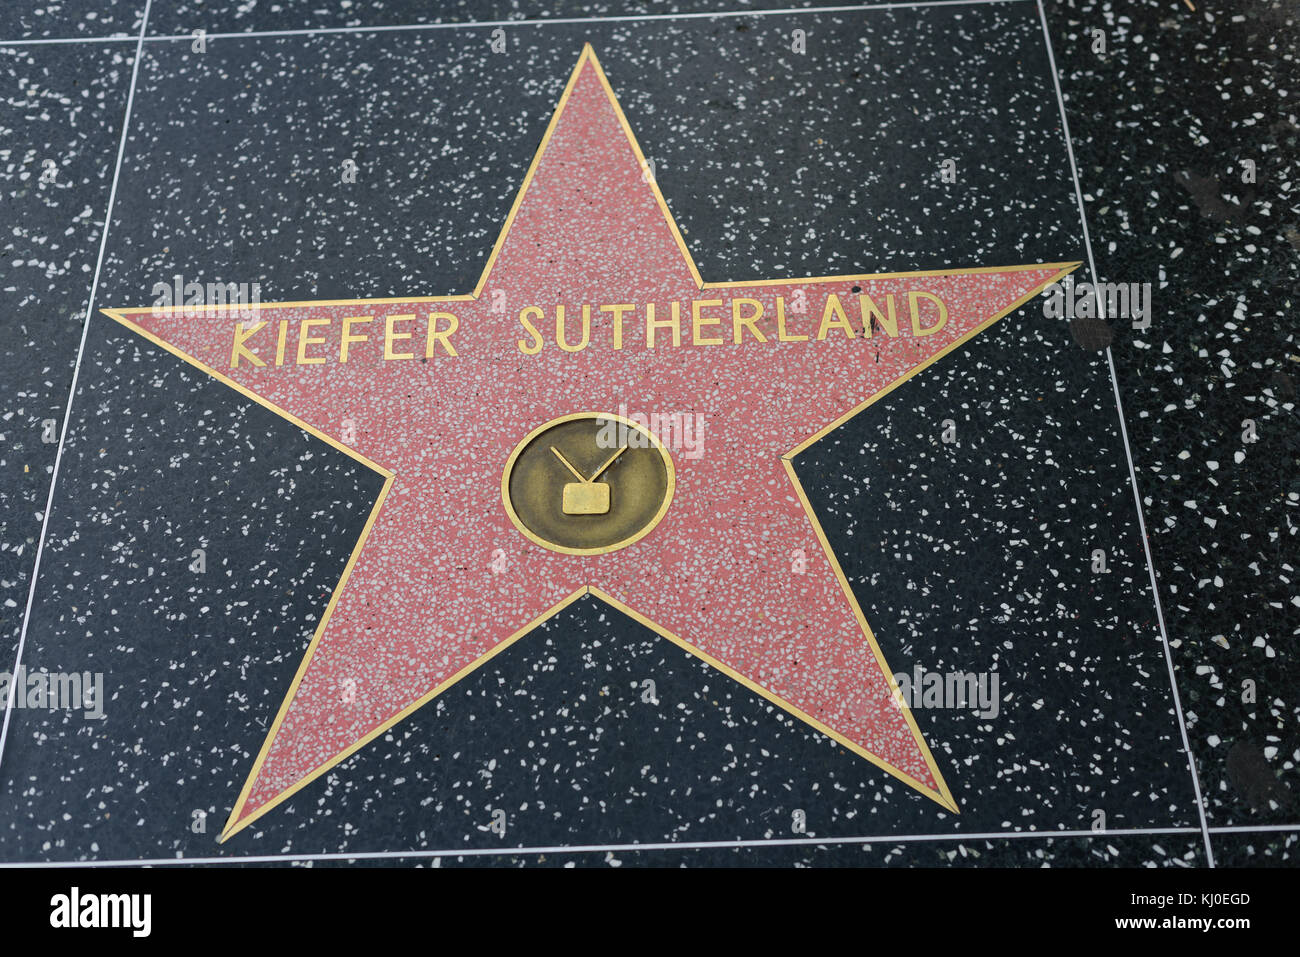 HOLLYWOOD, CA - DECEMBER 06: Kiefer Sutherland star on the Hollywood Walk of Fame in Hollywood, California on Dec. - Stock Image